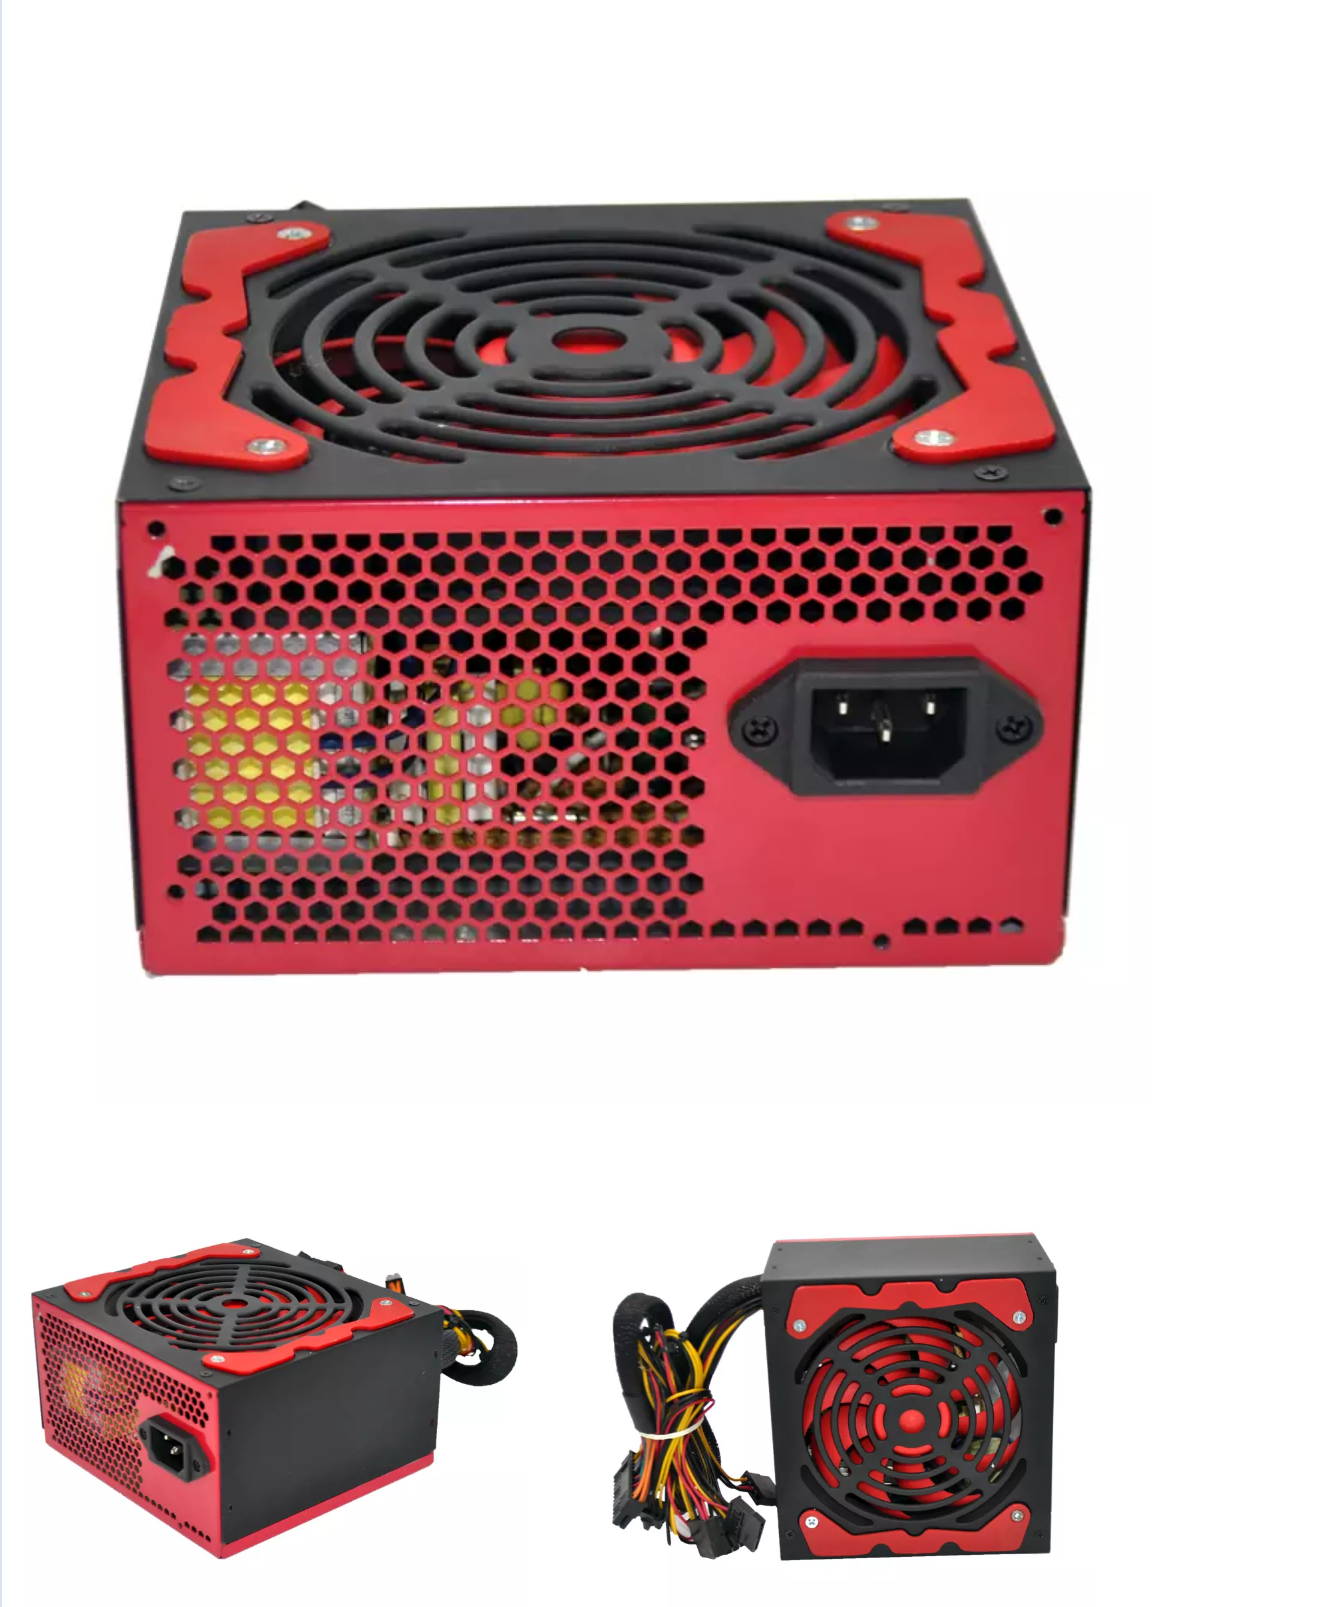 Atx Power Supply 300w